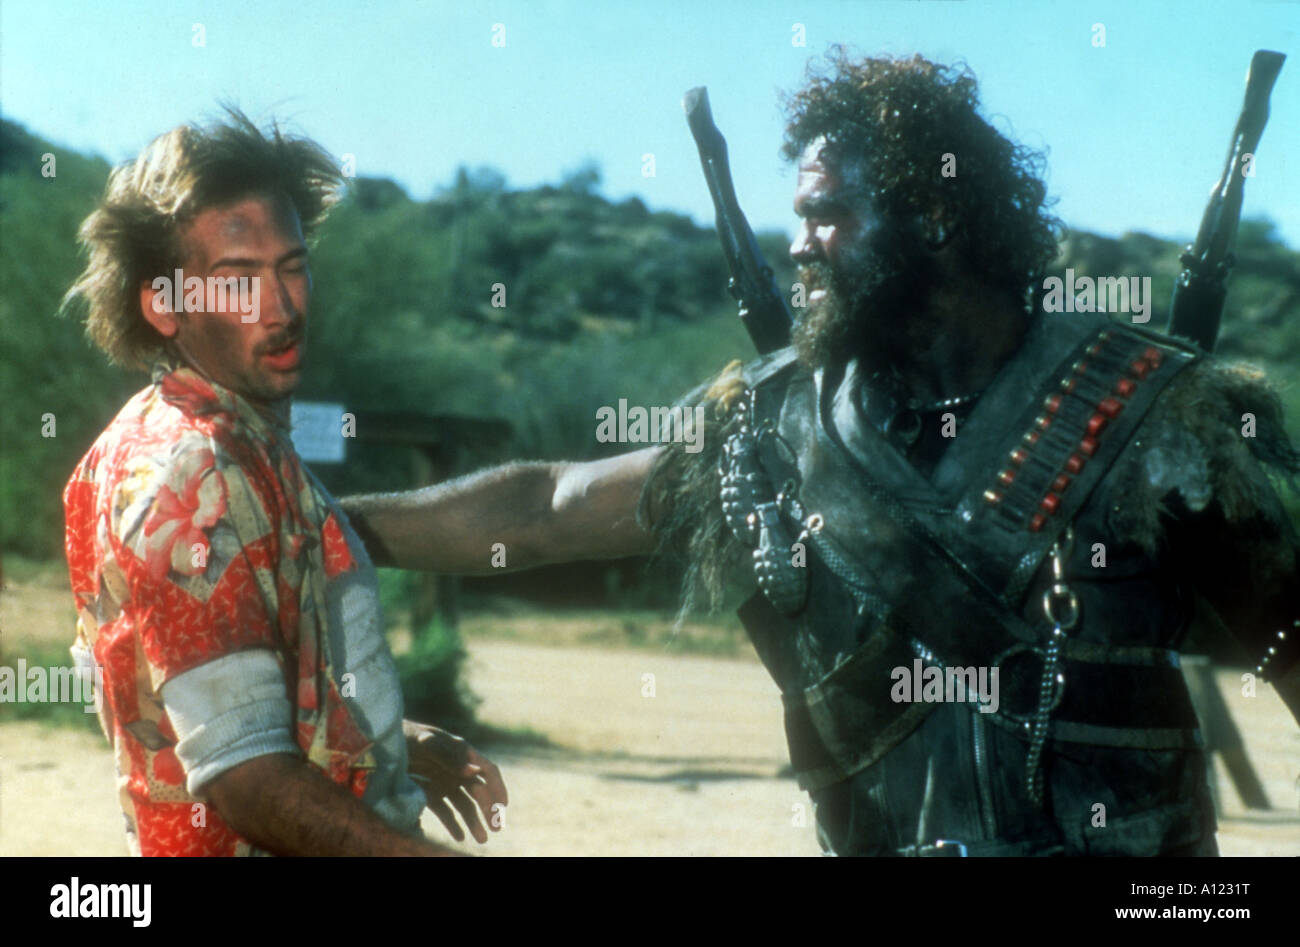 Raising Arizona Year 1986 Director Joel Coen Nicolas Cage Randall Tex Cobb Stock Photo